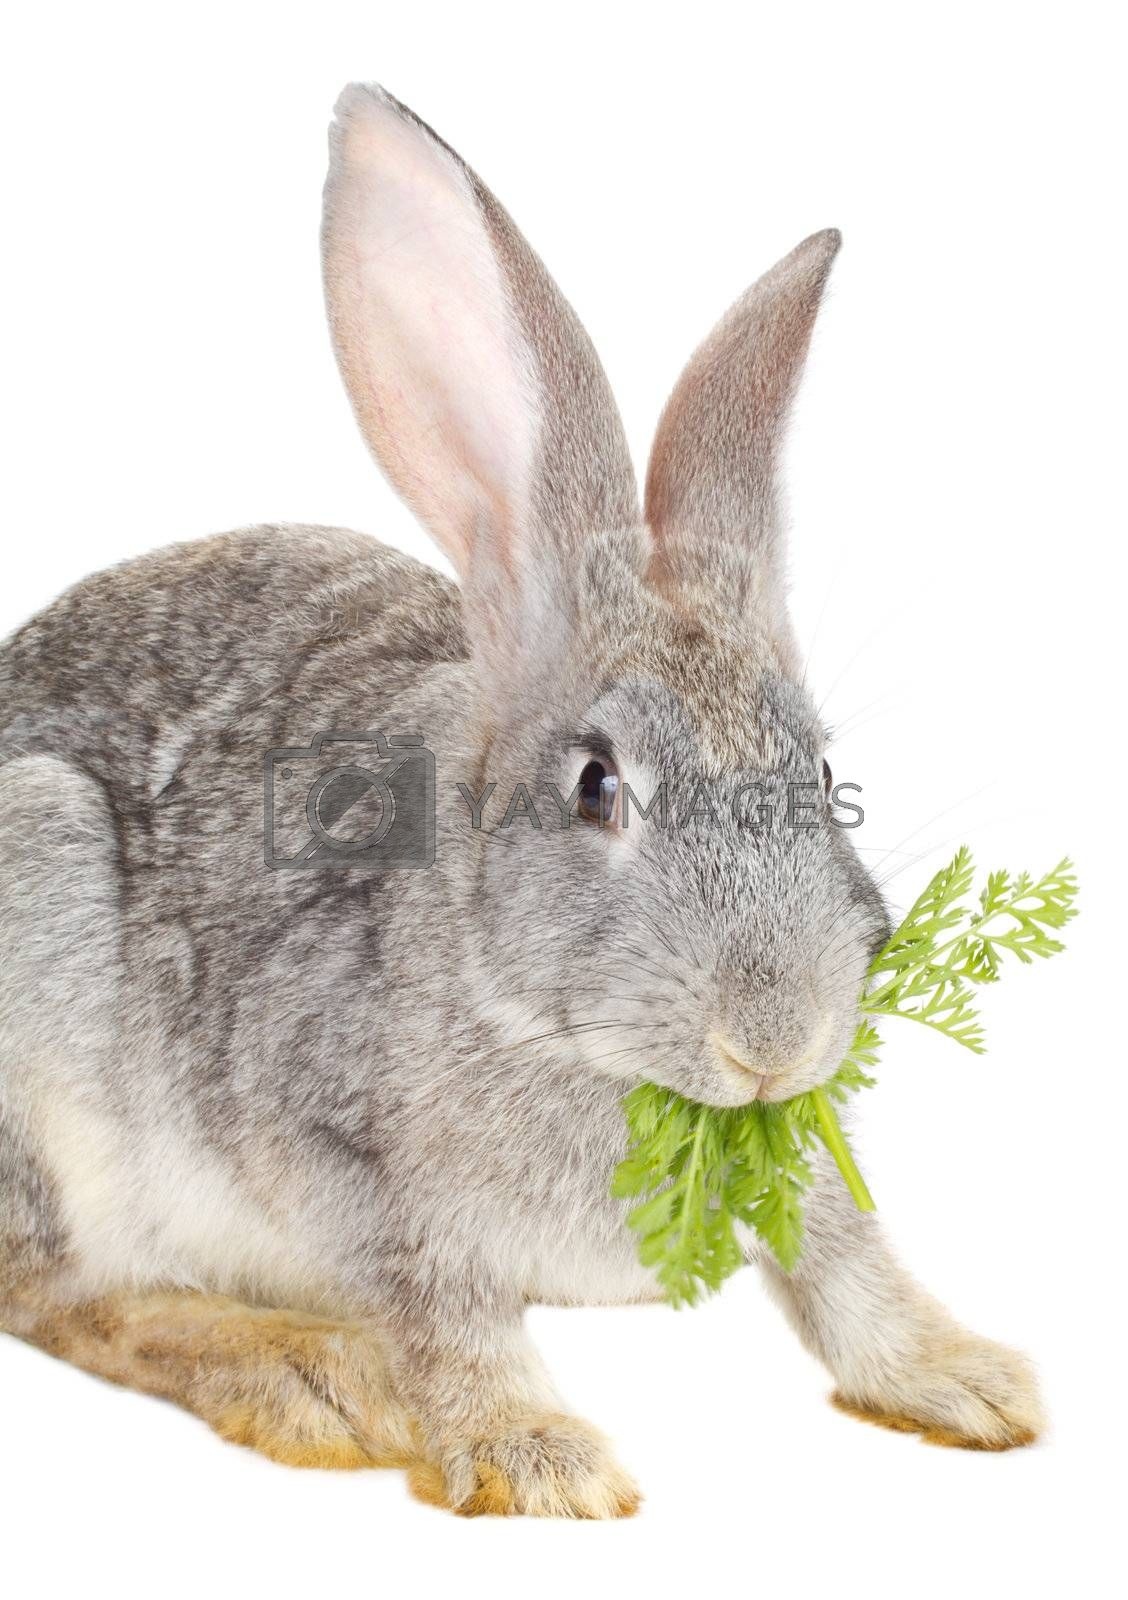 close-up rabbit eating carrot leaf, isolated on white